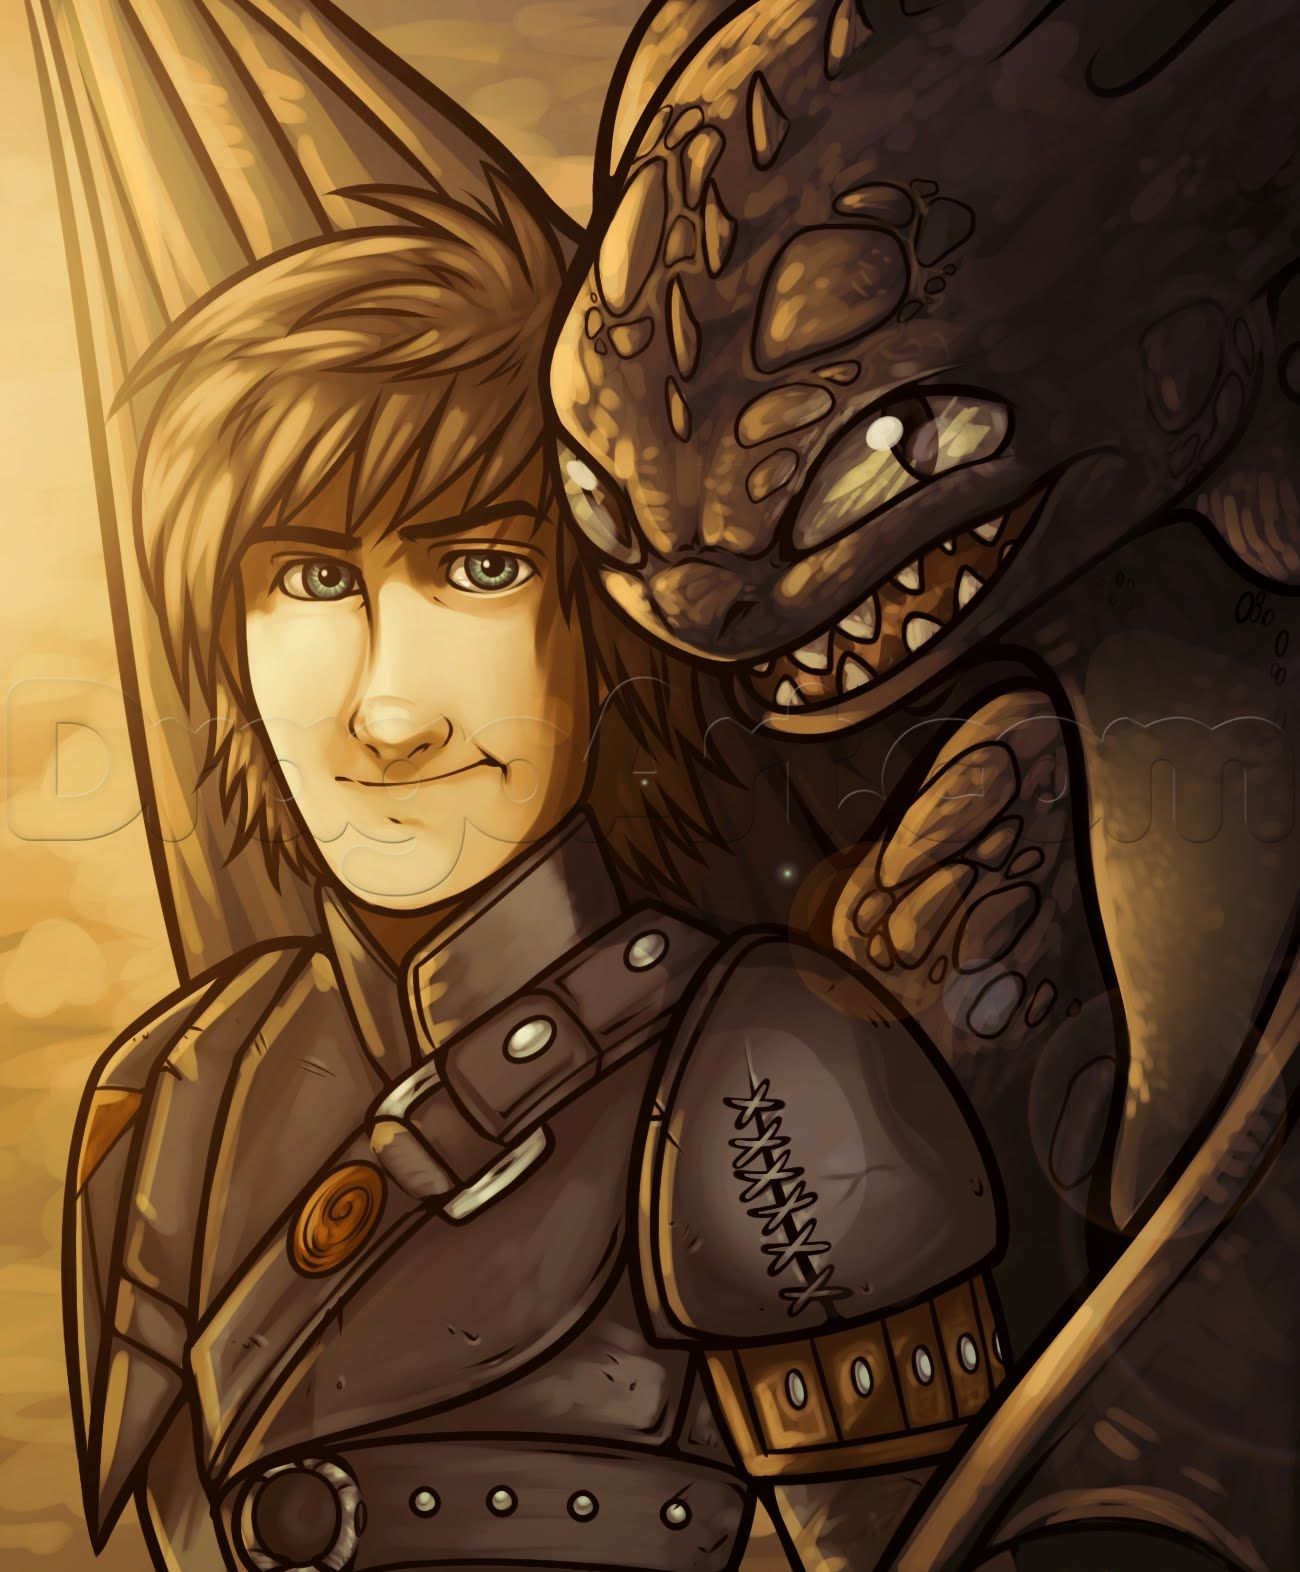 Drawing episode 1 part 1 hiccup and toothless make sure to watch drawing episode 1 part 1 hiccup and toothless make sure to watch all the episodes btw the more you watch and the longer it is the more money i get d ccuart Images